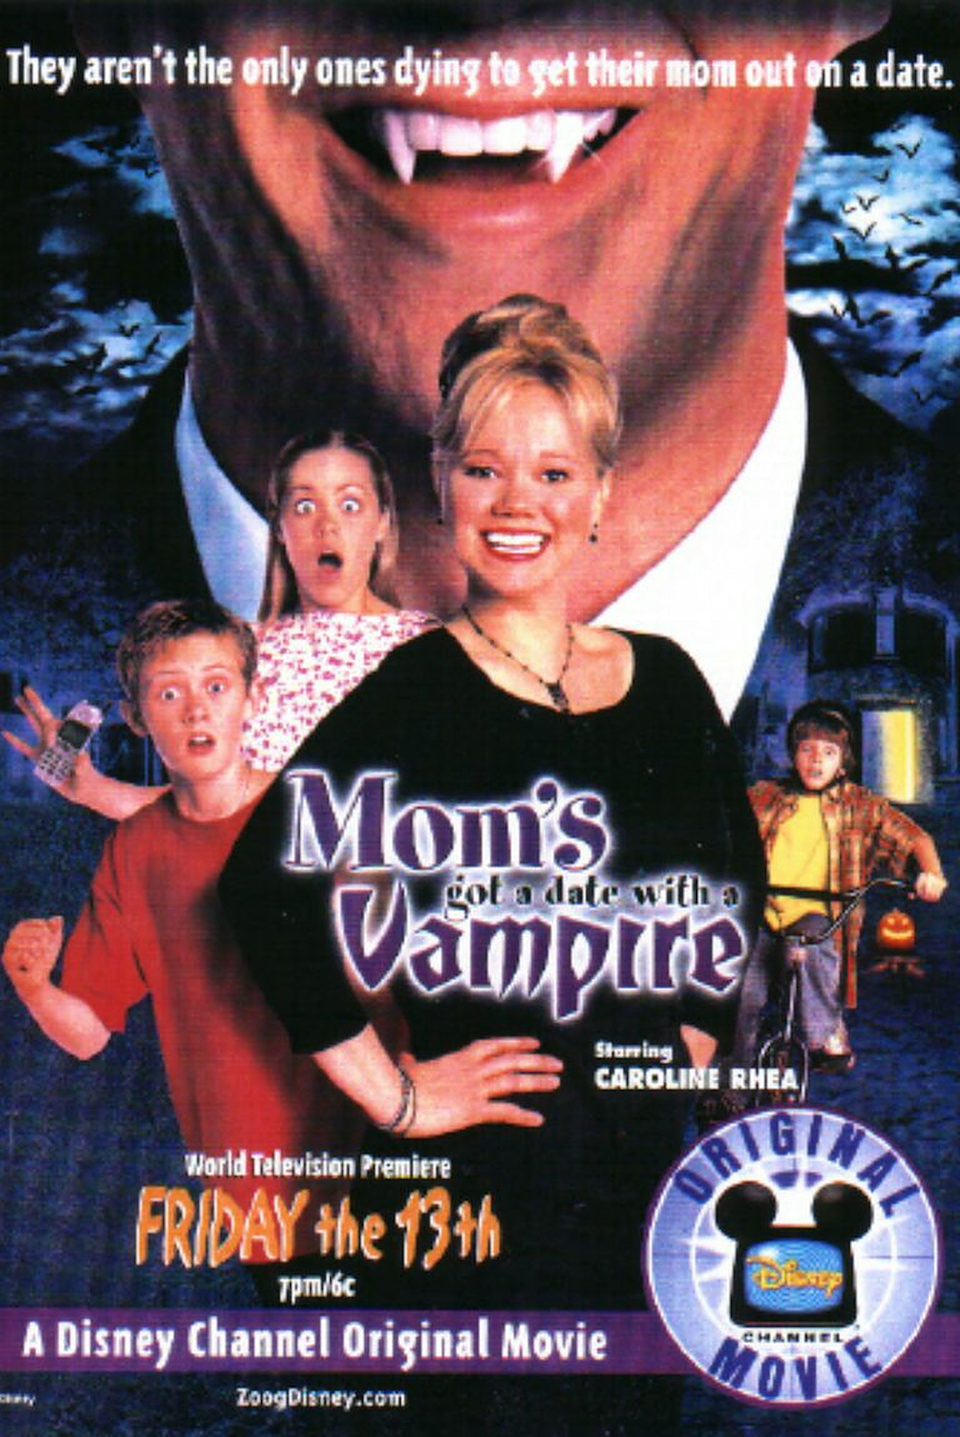 """<p>Adam and Chelsea (<strong>Matthew O'Leary </strong>and<strong> Laura Vandervoort</strong>) have major plans for the night, but their mom (<strong>Caroline Rhea</strong>) grounded them. To distract her so they can sneak out for the evening, they set her up on a date. But when Taylor (<strong>Myles Jeffrey</strong>) realizes that the man is a vampire, they have to fight to save their mom's life. </p><p><a class=""""link rapid-noclick-resp"""" href=""""https://go.redirectingat.com?id=74968X1596630&url=https%3A%2F%2Fwww.disneyplus.com%2Fmovies%2Fmoms-got-a-date-with-a-vampire%2FE1GCgPSh5Rfu&sref=https%3A%2F%2Fwww.goodhousekeeping.com%2Flife%2Fentertainment%2Fg33651563%2Fdisney-halloween-movies%2F"""" rel=""""nofollow noopener"""" target=""""_blank"""" data-ylk=""""slk:WATCH NOW"""">WATCH NOW</a></p>"""